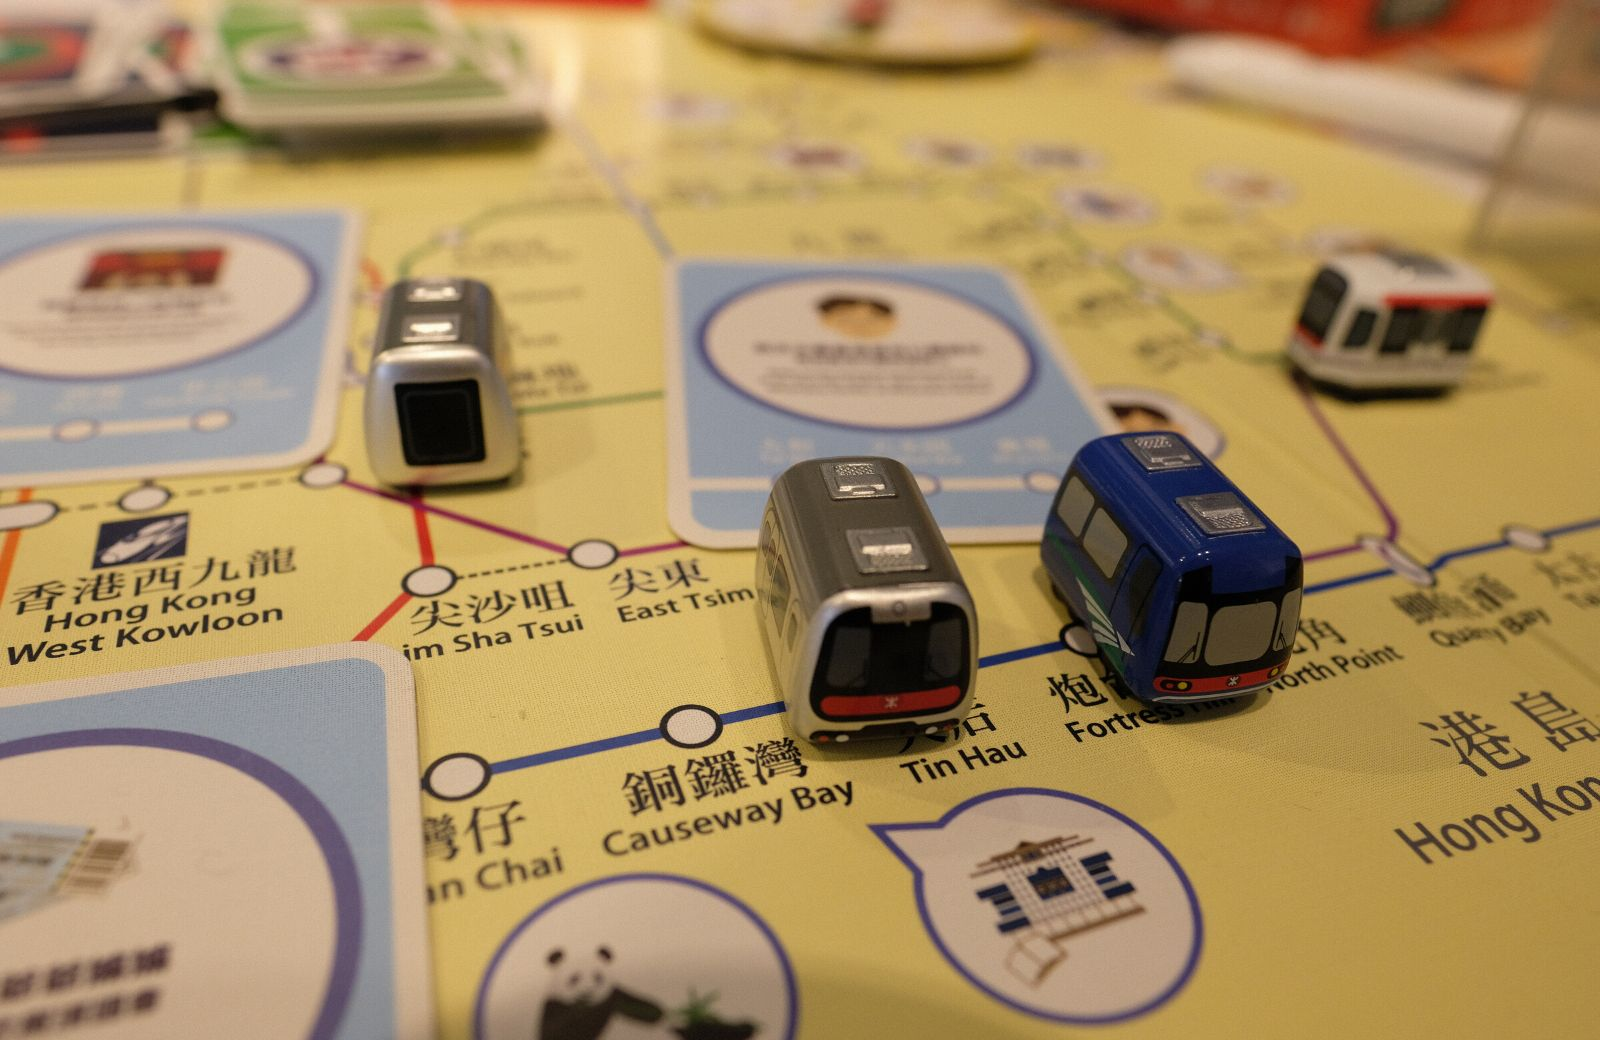 Hong Kong Family Board Game